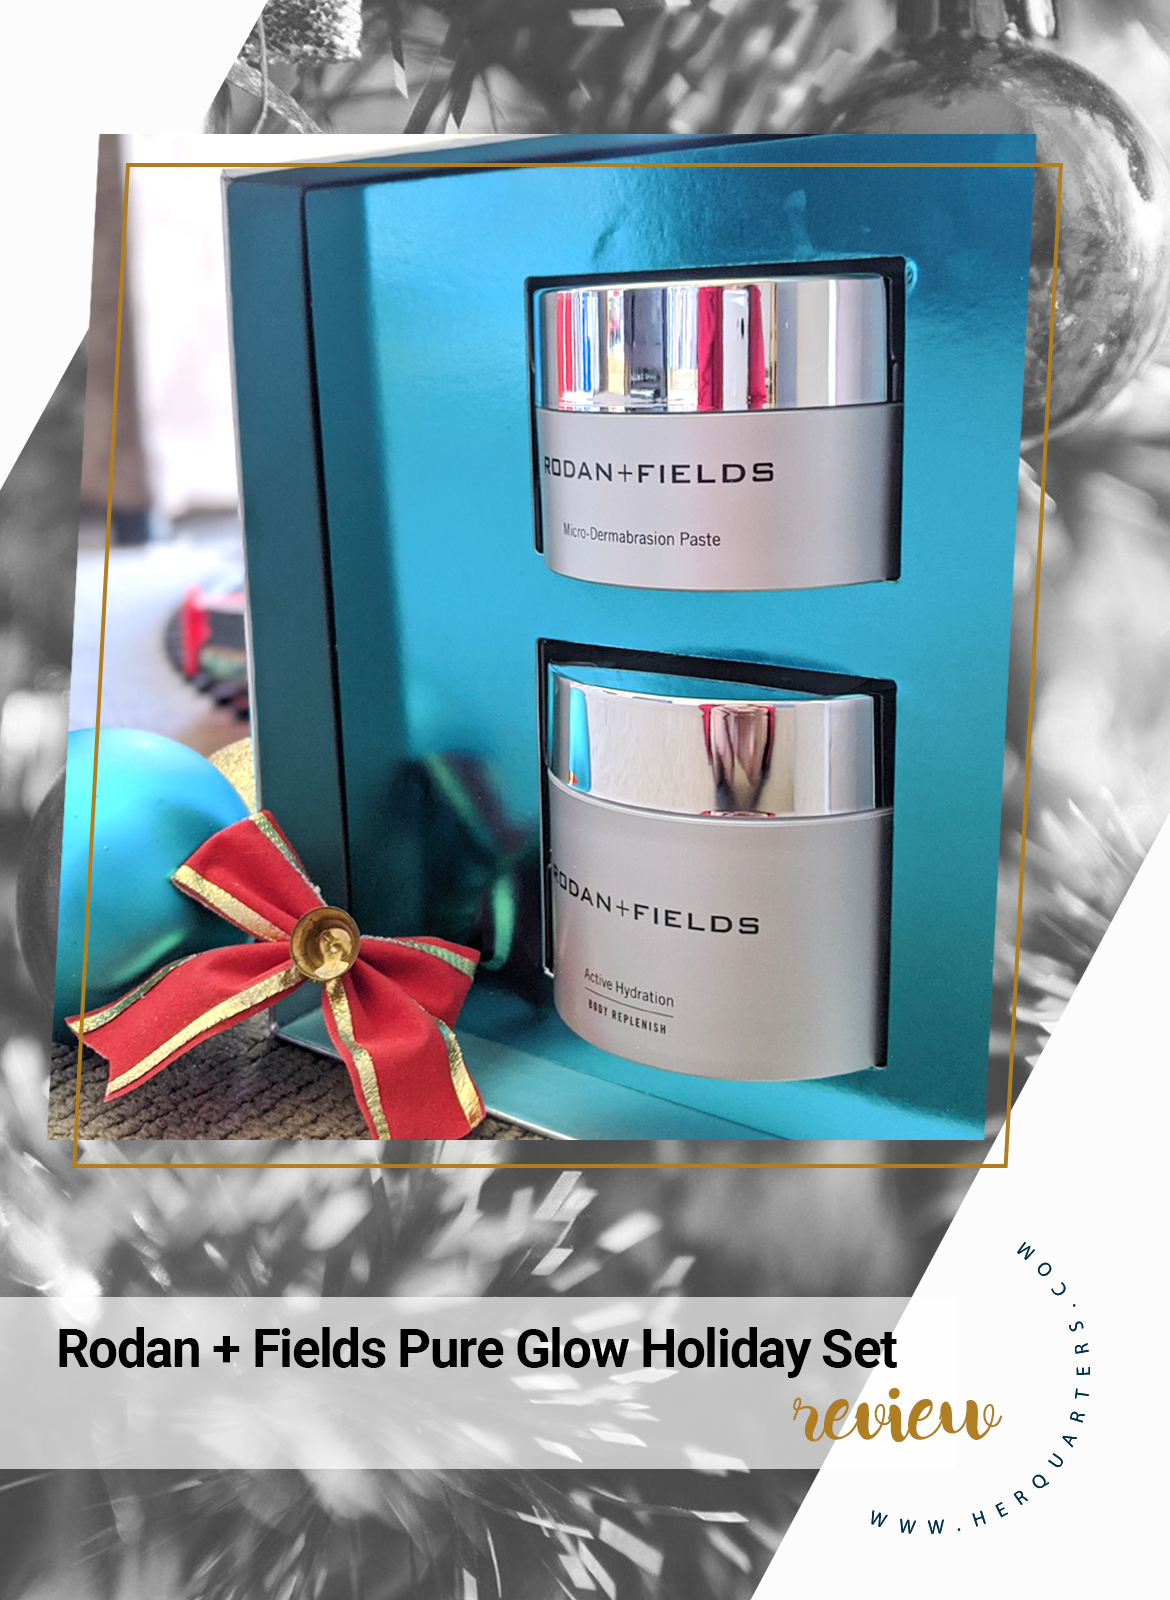 Rodan + Fields Pinterest